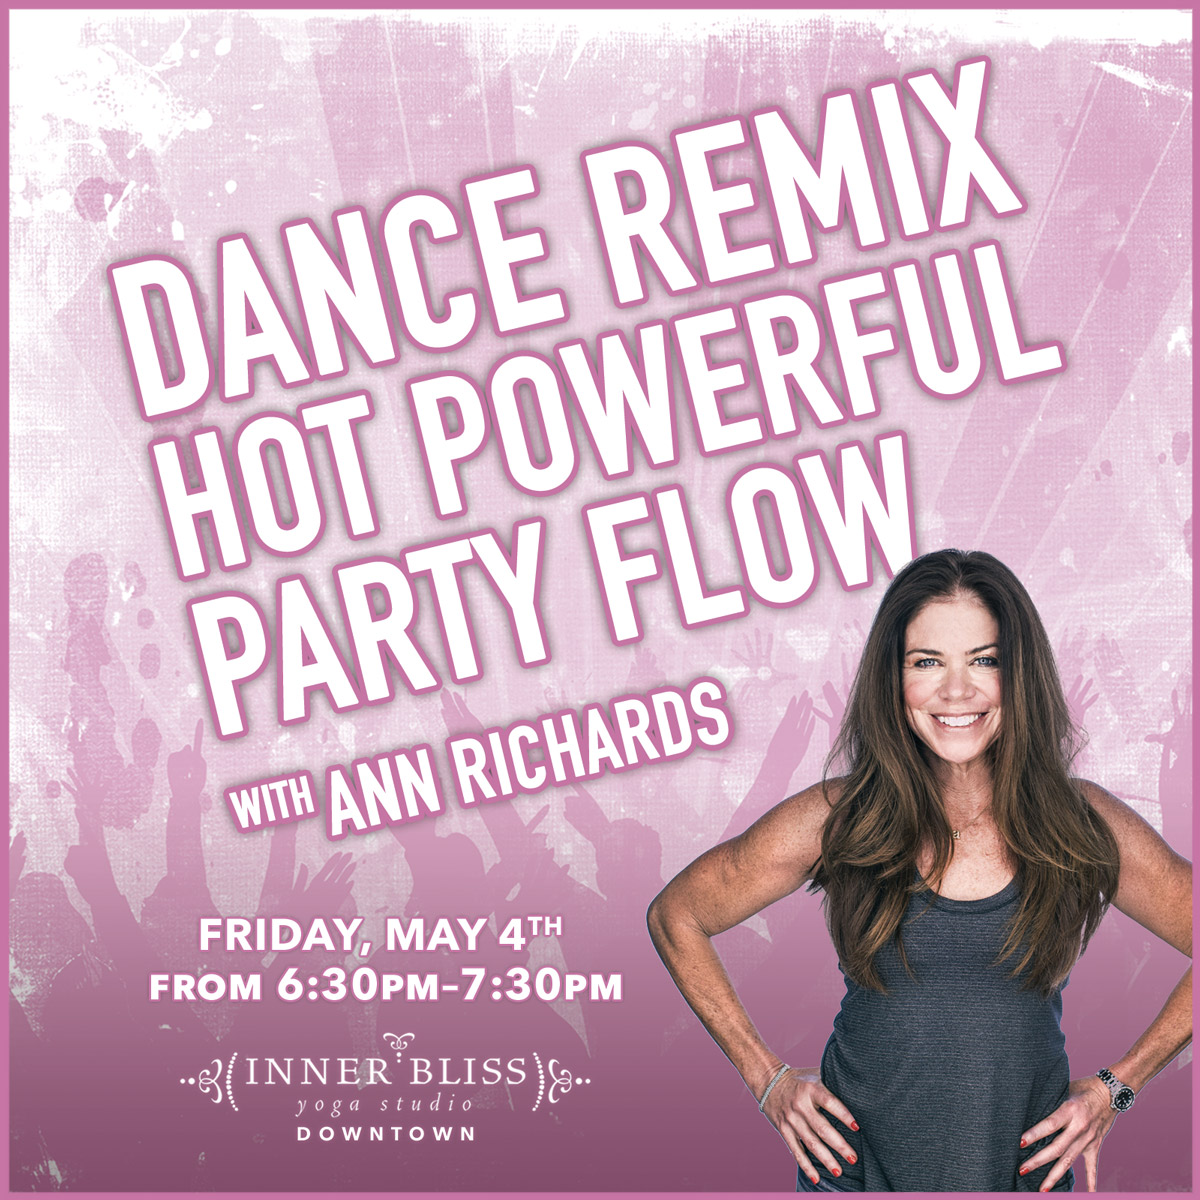 iby-Dance-Remix-Hot-Powerful-Party-Flow-copy.jpg